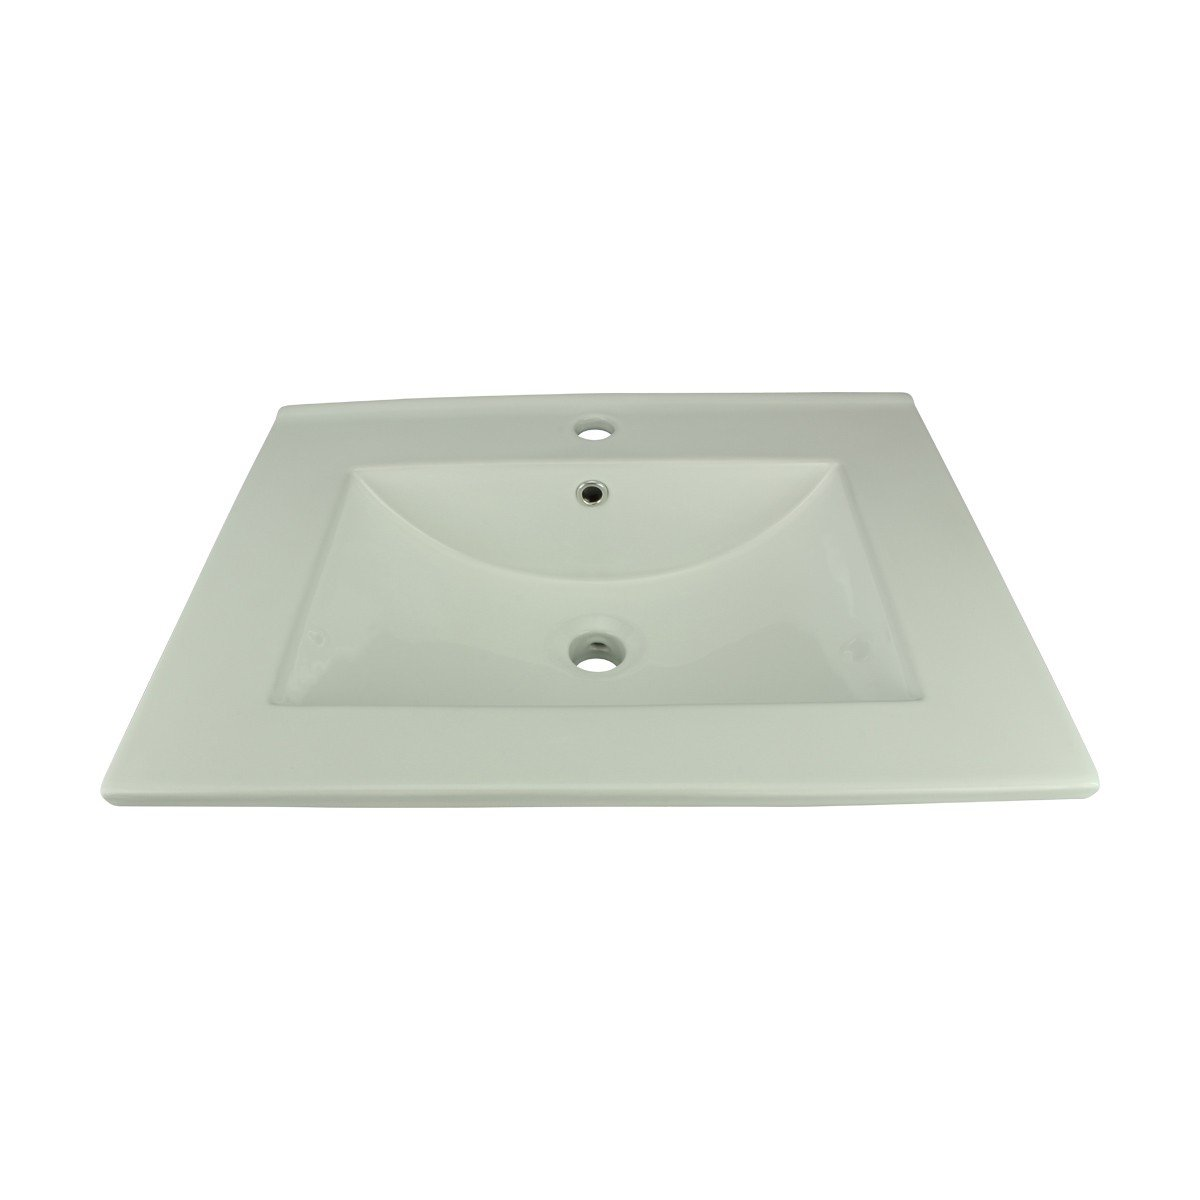 White Bathroom Drop in Sink Square Self-Rimming White China Sink with Single Faucet Hole by Renovator's Supply